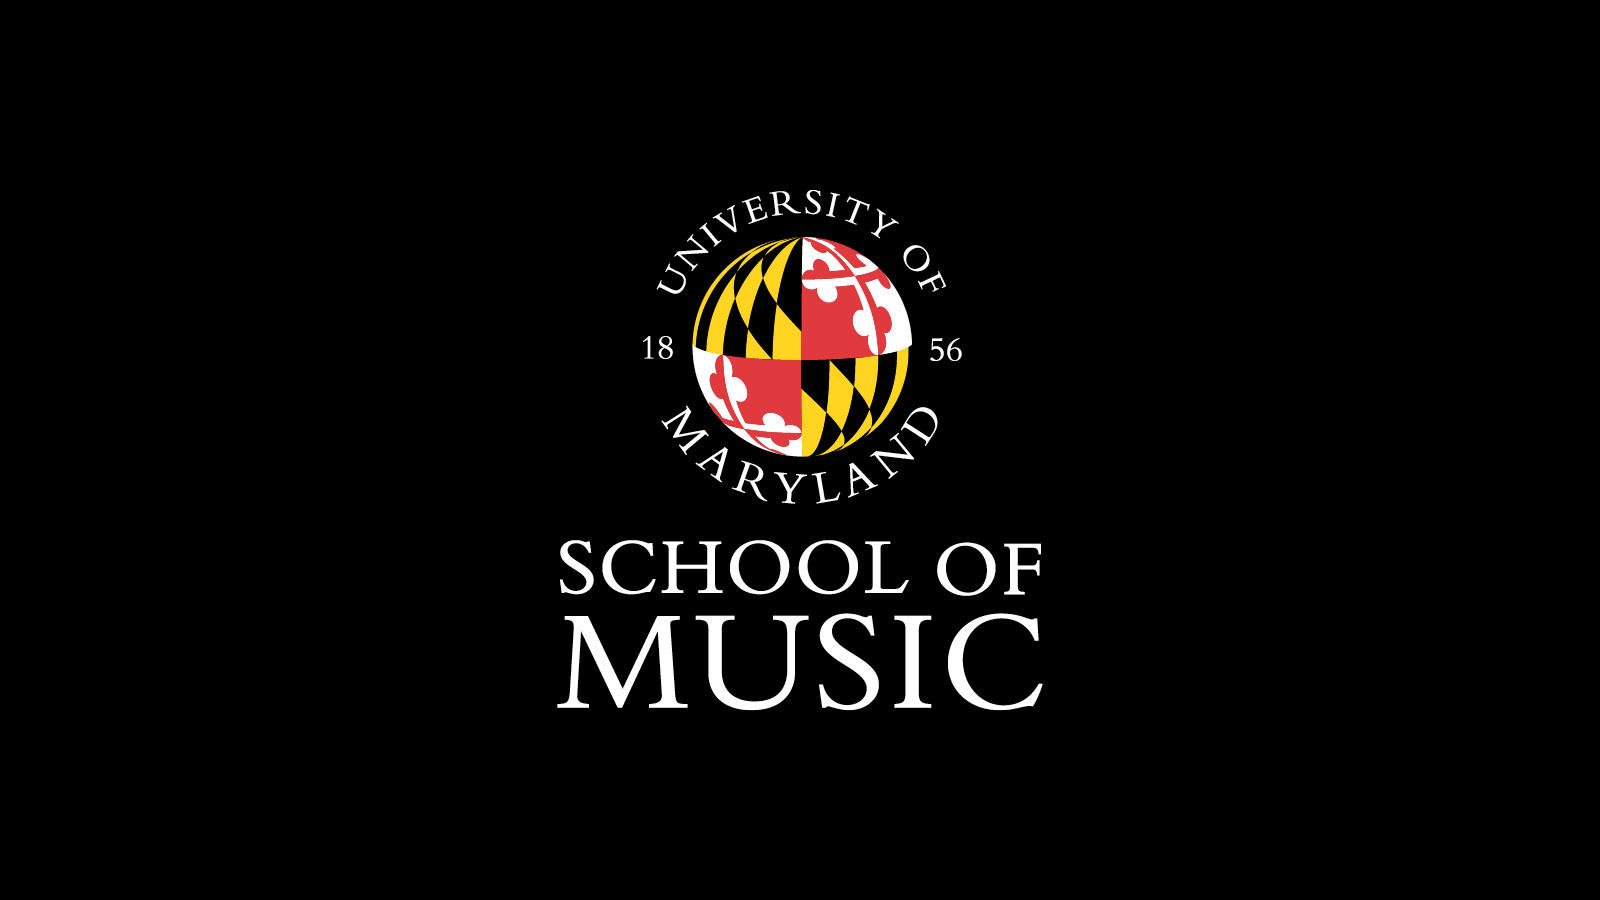 University of Maryland School of Music logo on black background.